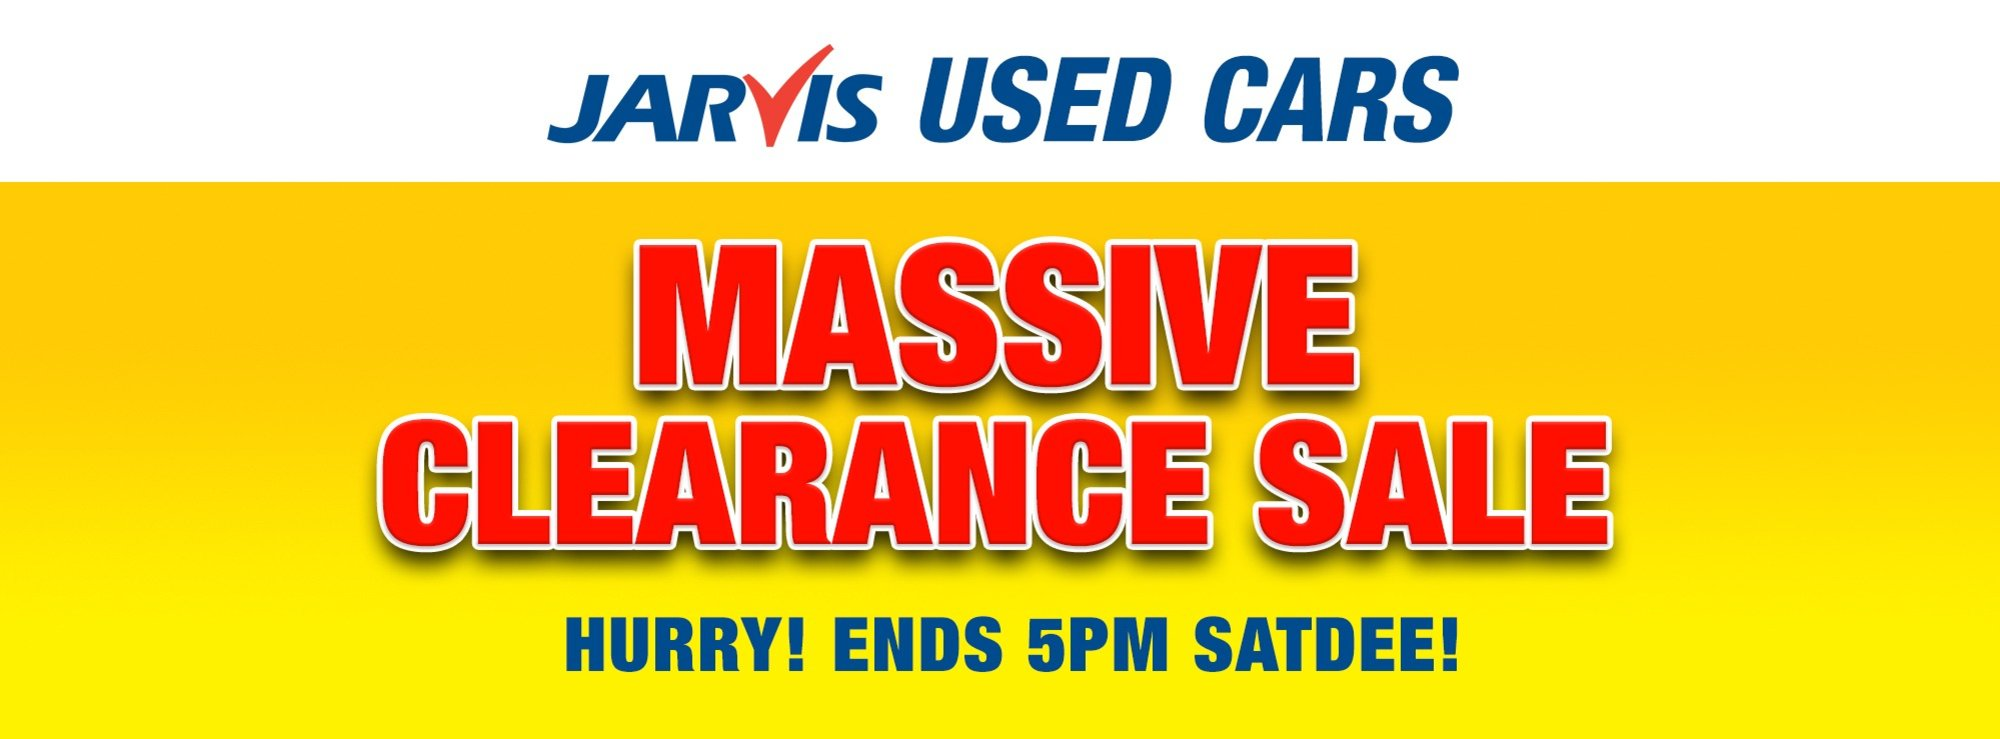 Jarvis Massive Clearance Sale